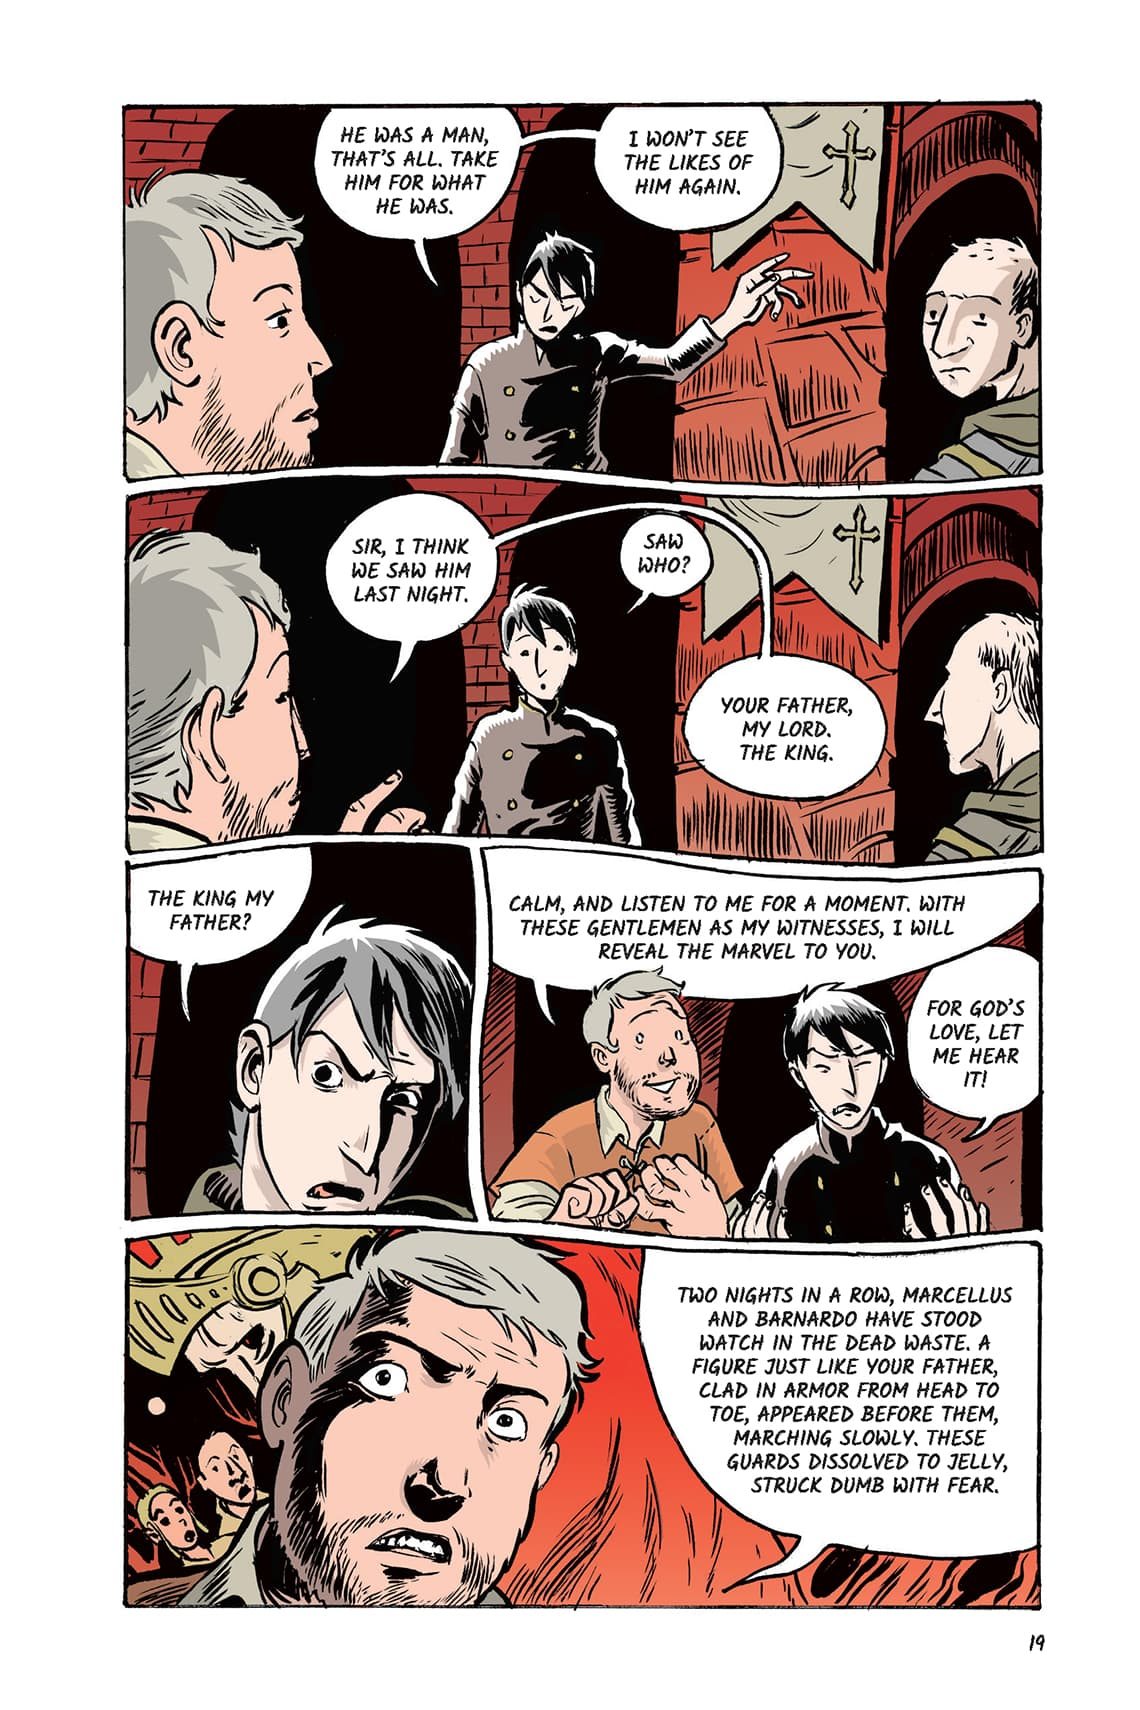 Hamlet Act 1 Scene 2 Page 19 Graphic Novel Sparknotes No Fear Shakespeare